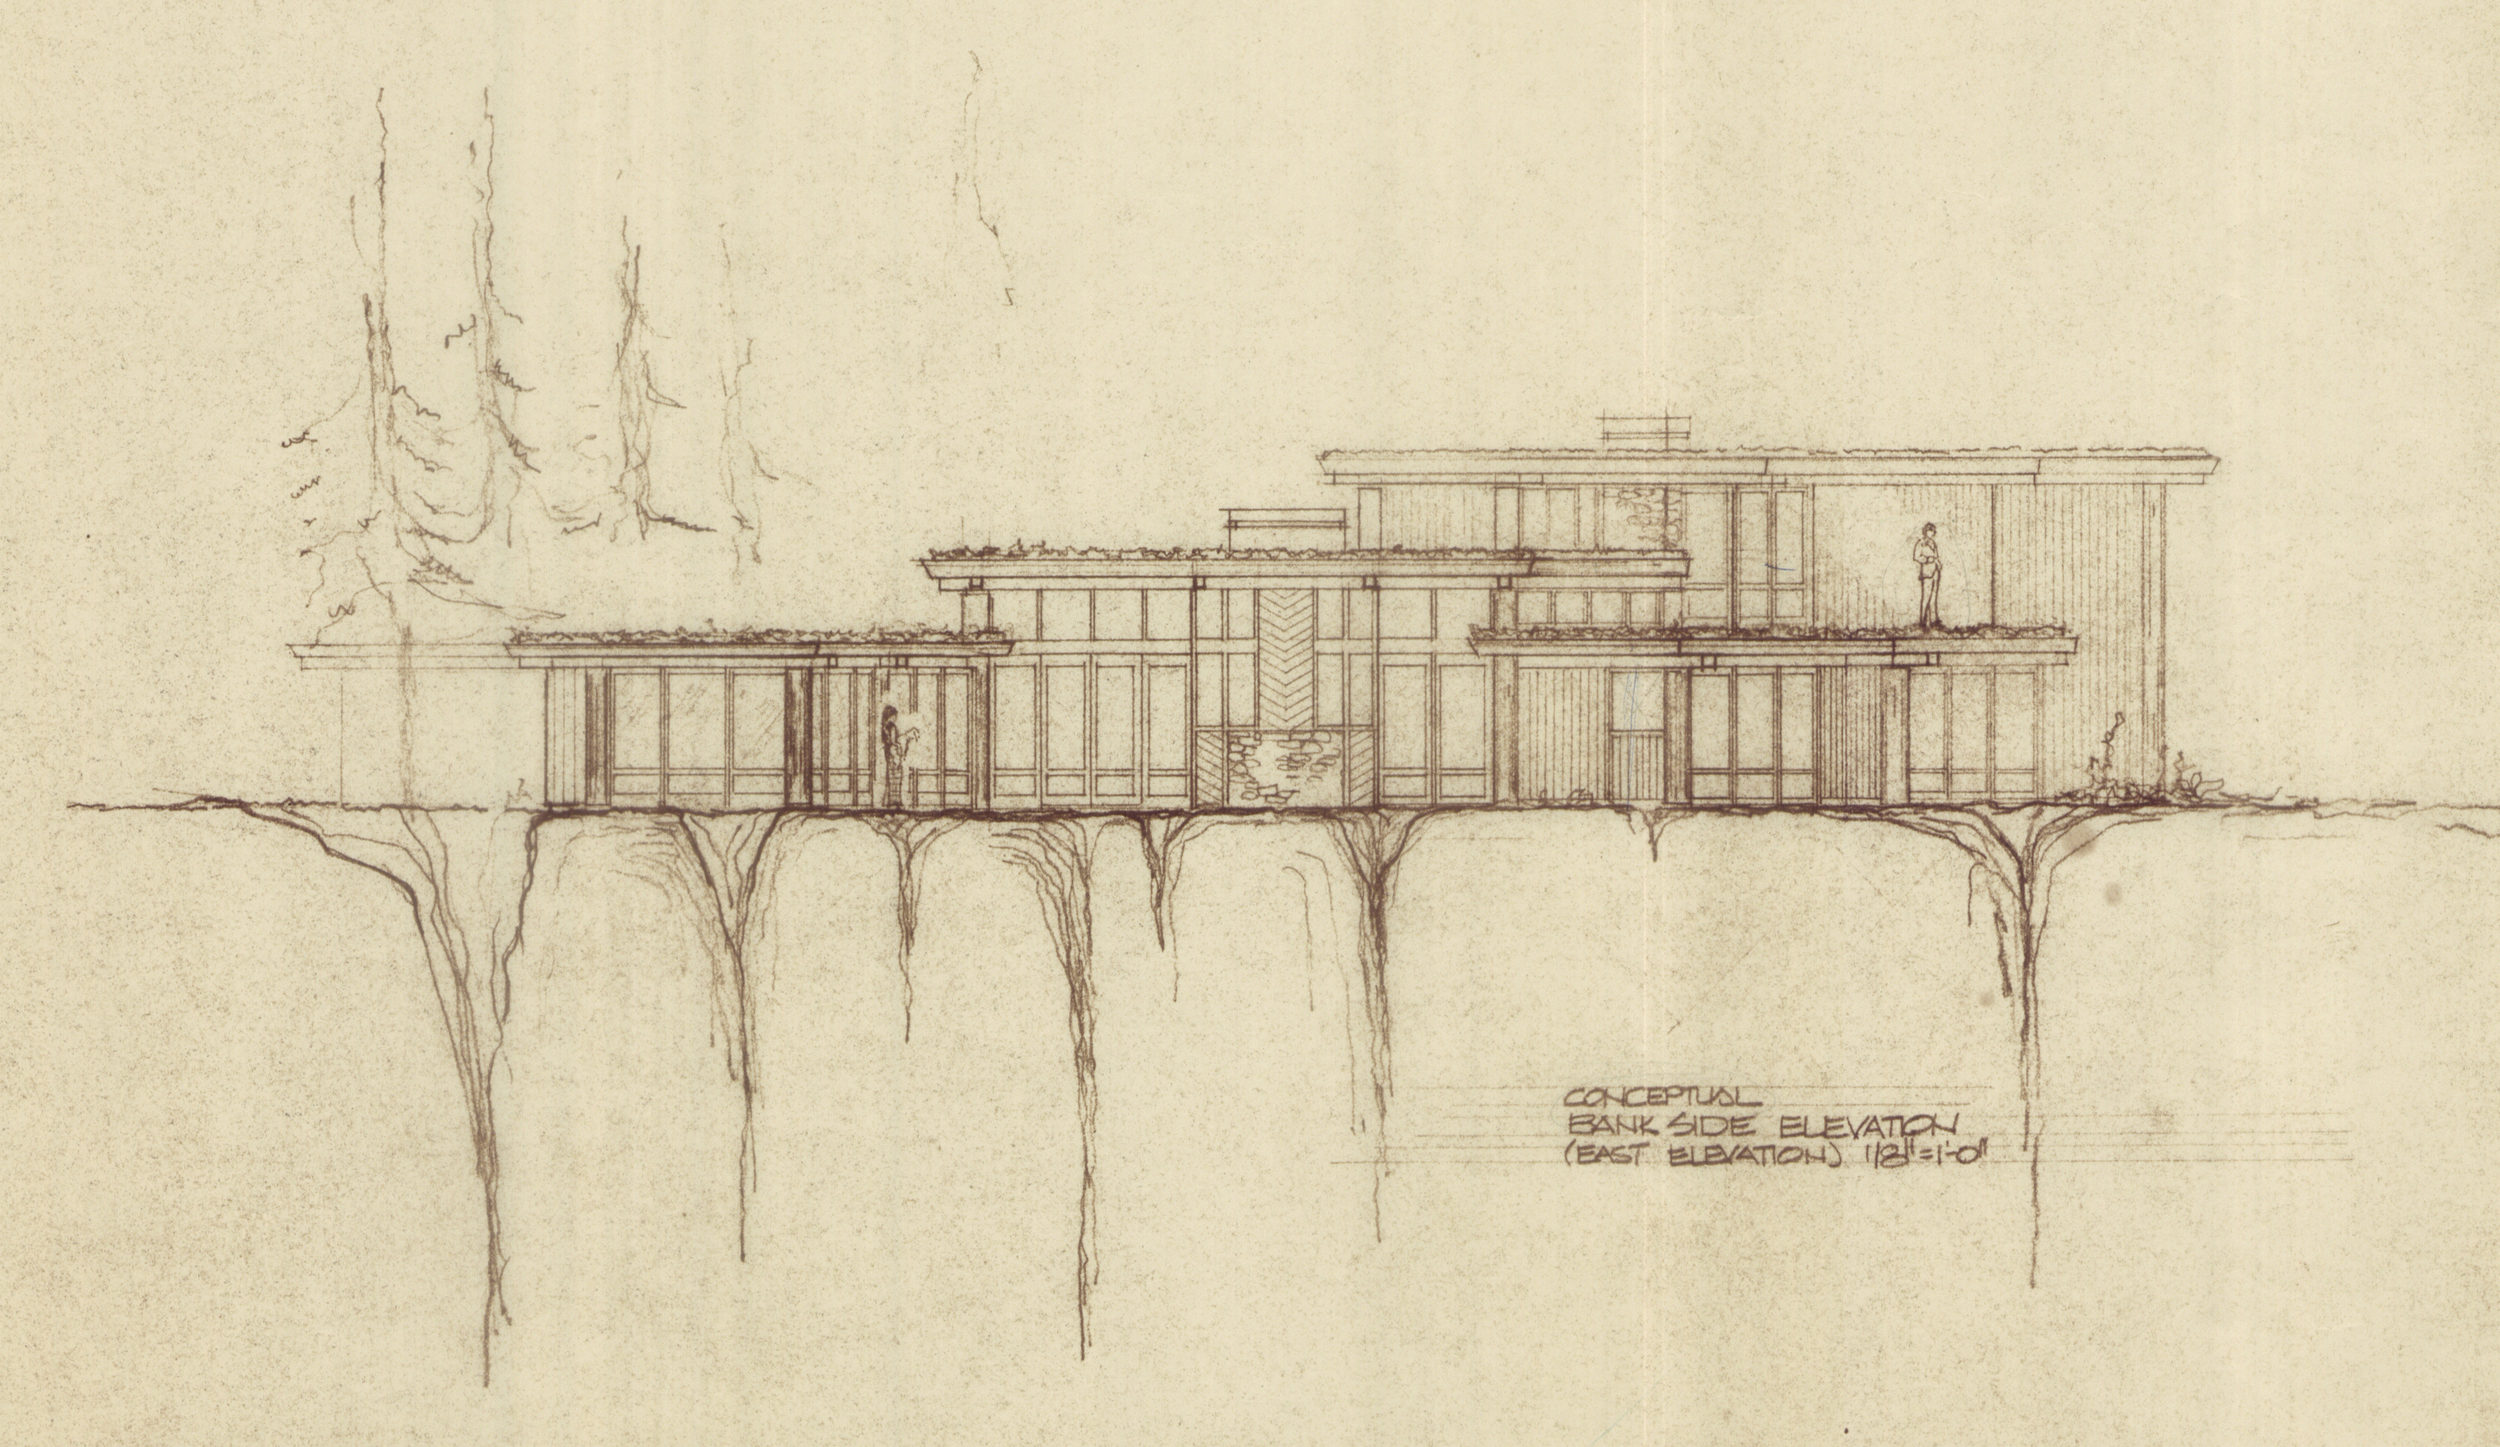 Original Plans - Conceptual Bank Side Elevation